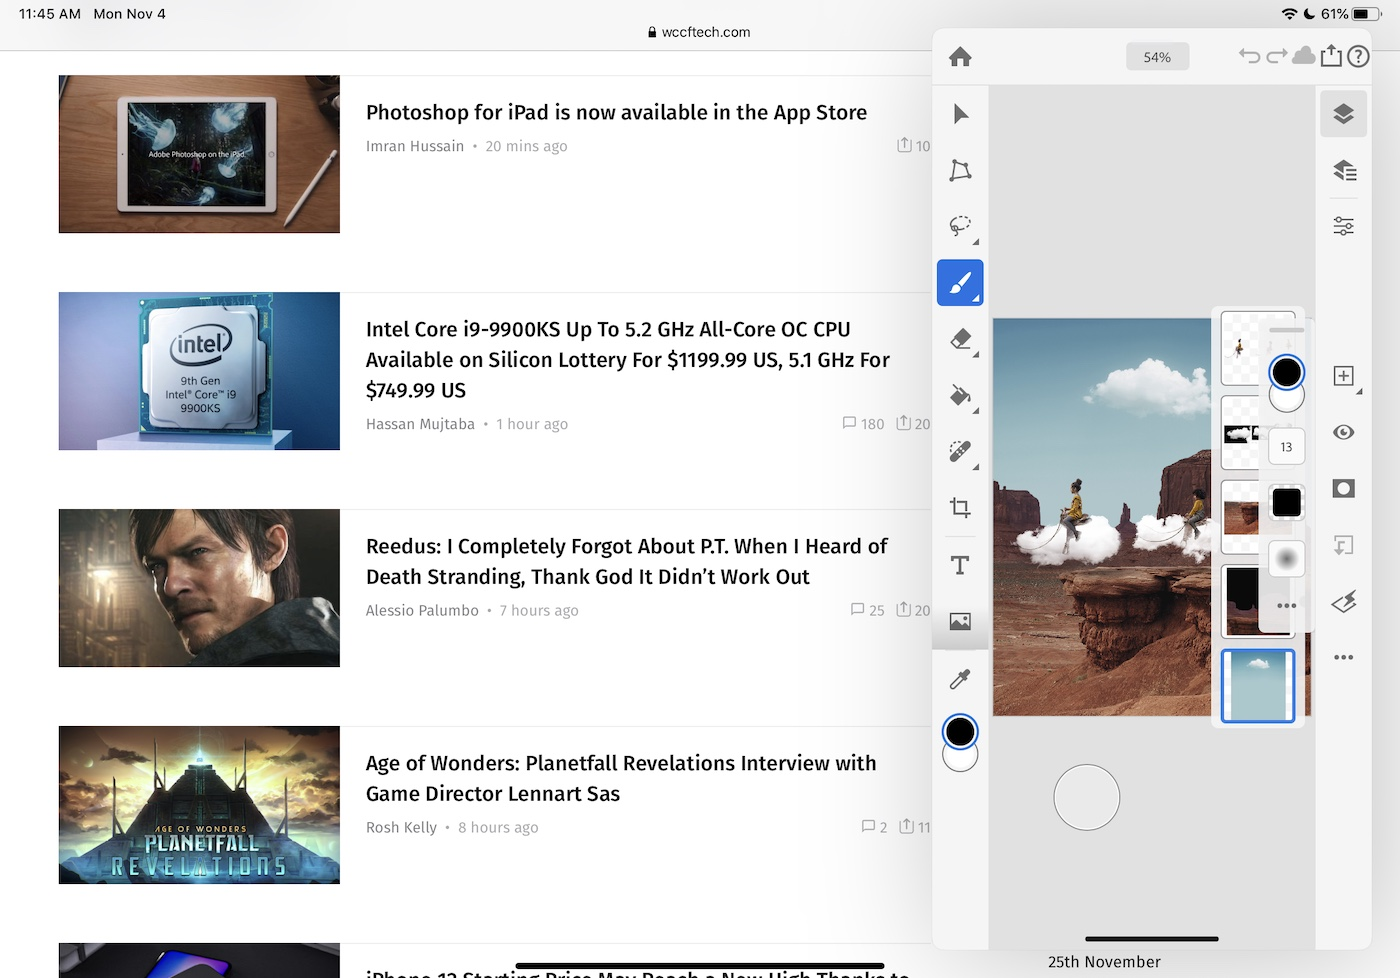 Photoshop for iPad Slideover